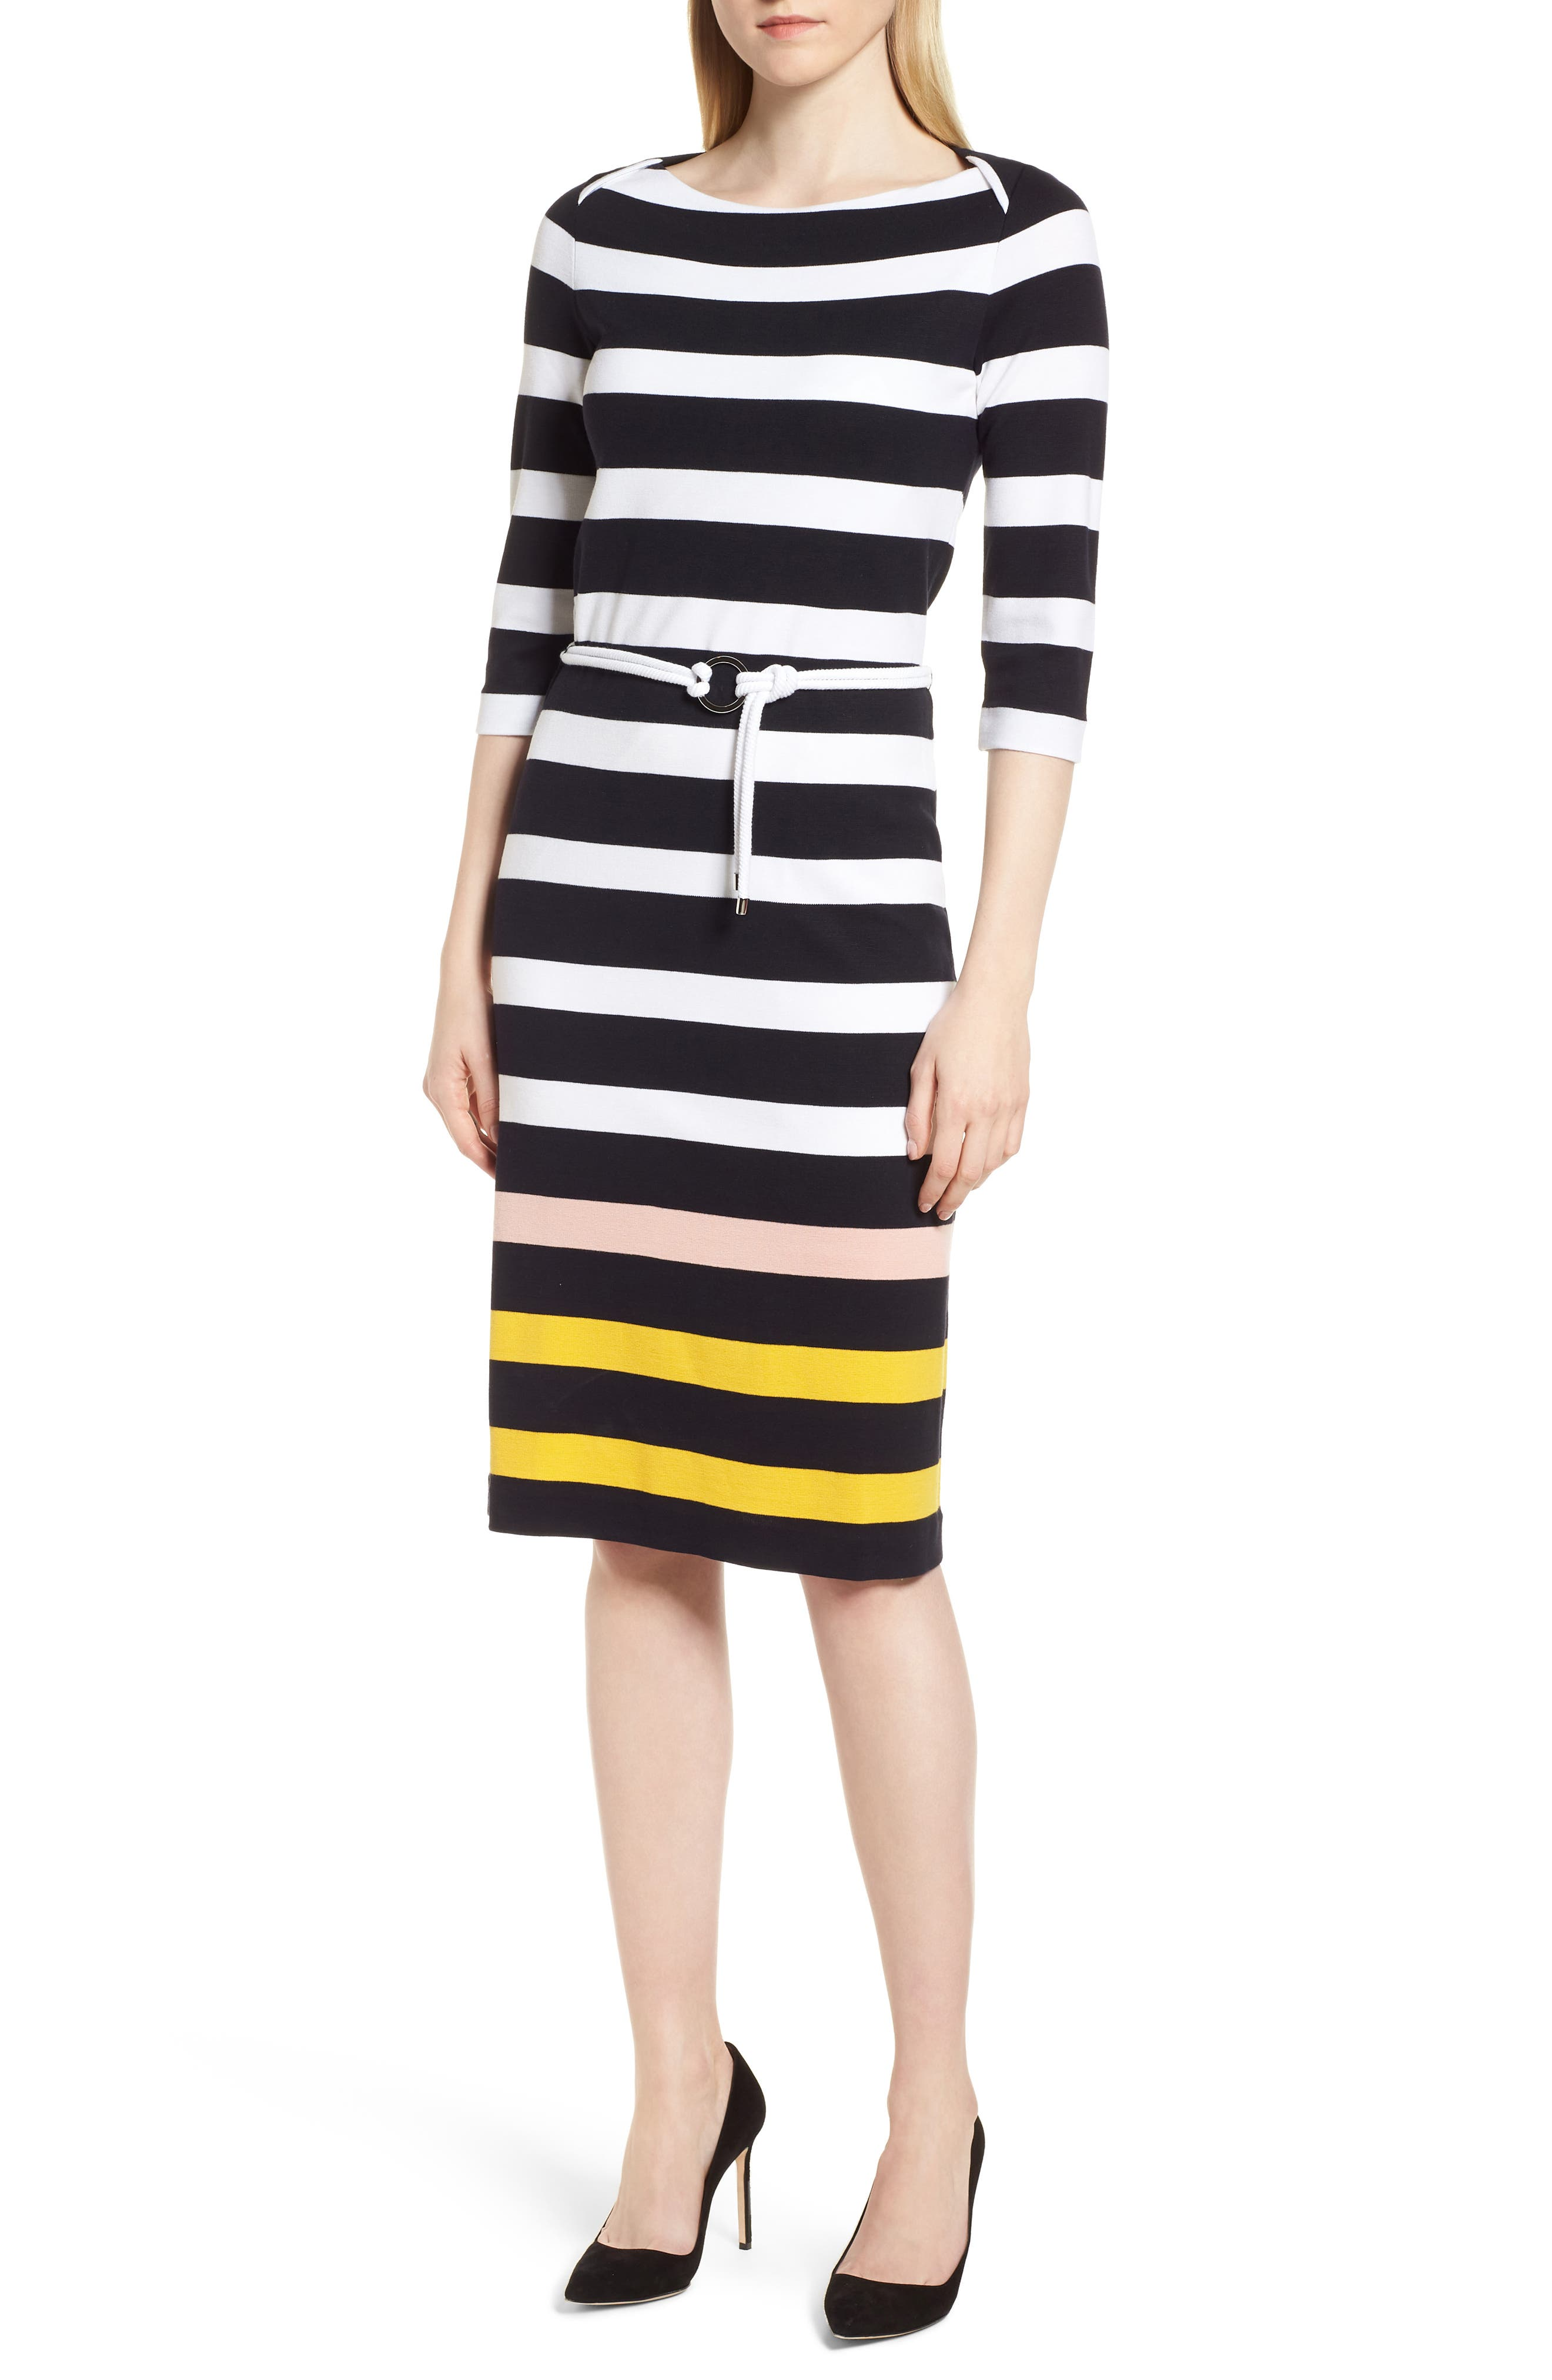 Elsara Stripe Sheath Dress,                             Main thumbnail 1, color,                             461